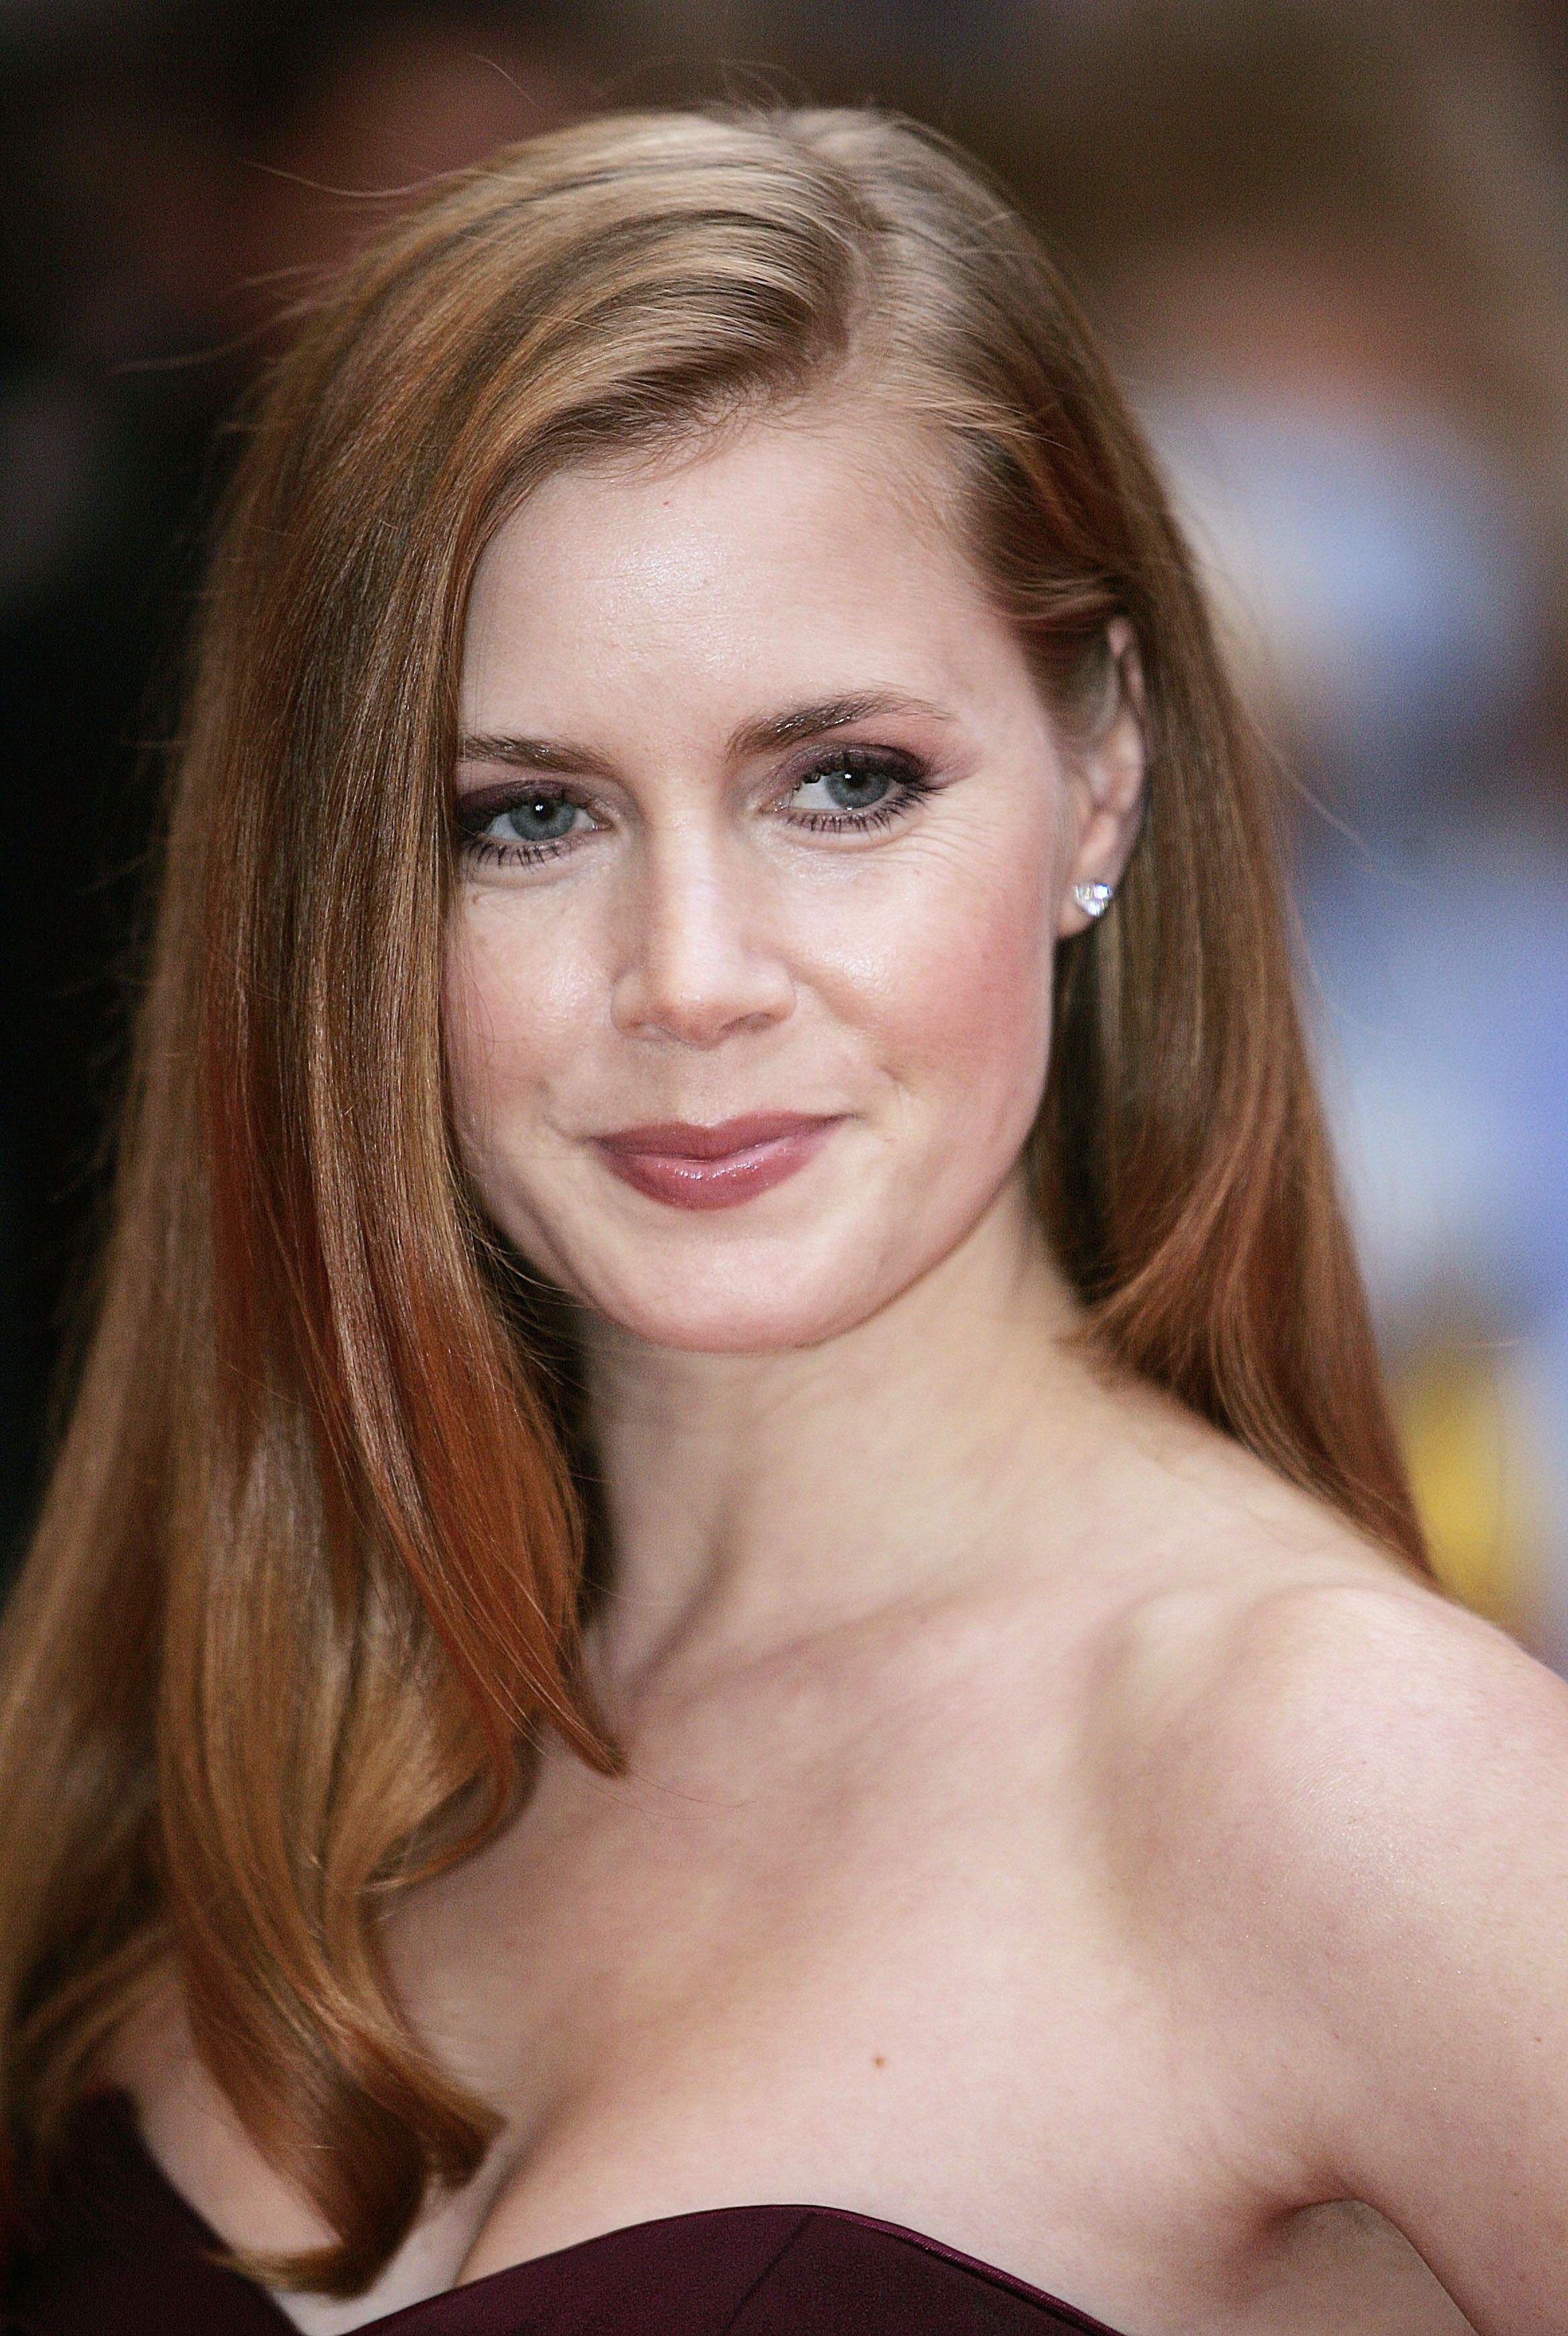 02779_Celebutopia-Amy_Adams-Enchanted_UK_premiere_in_London-01_122_729lo.jpg